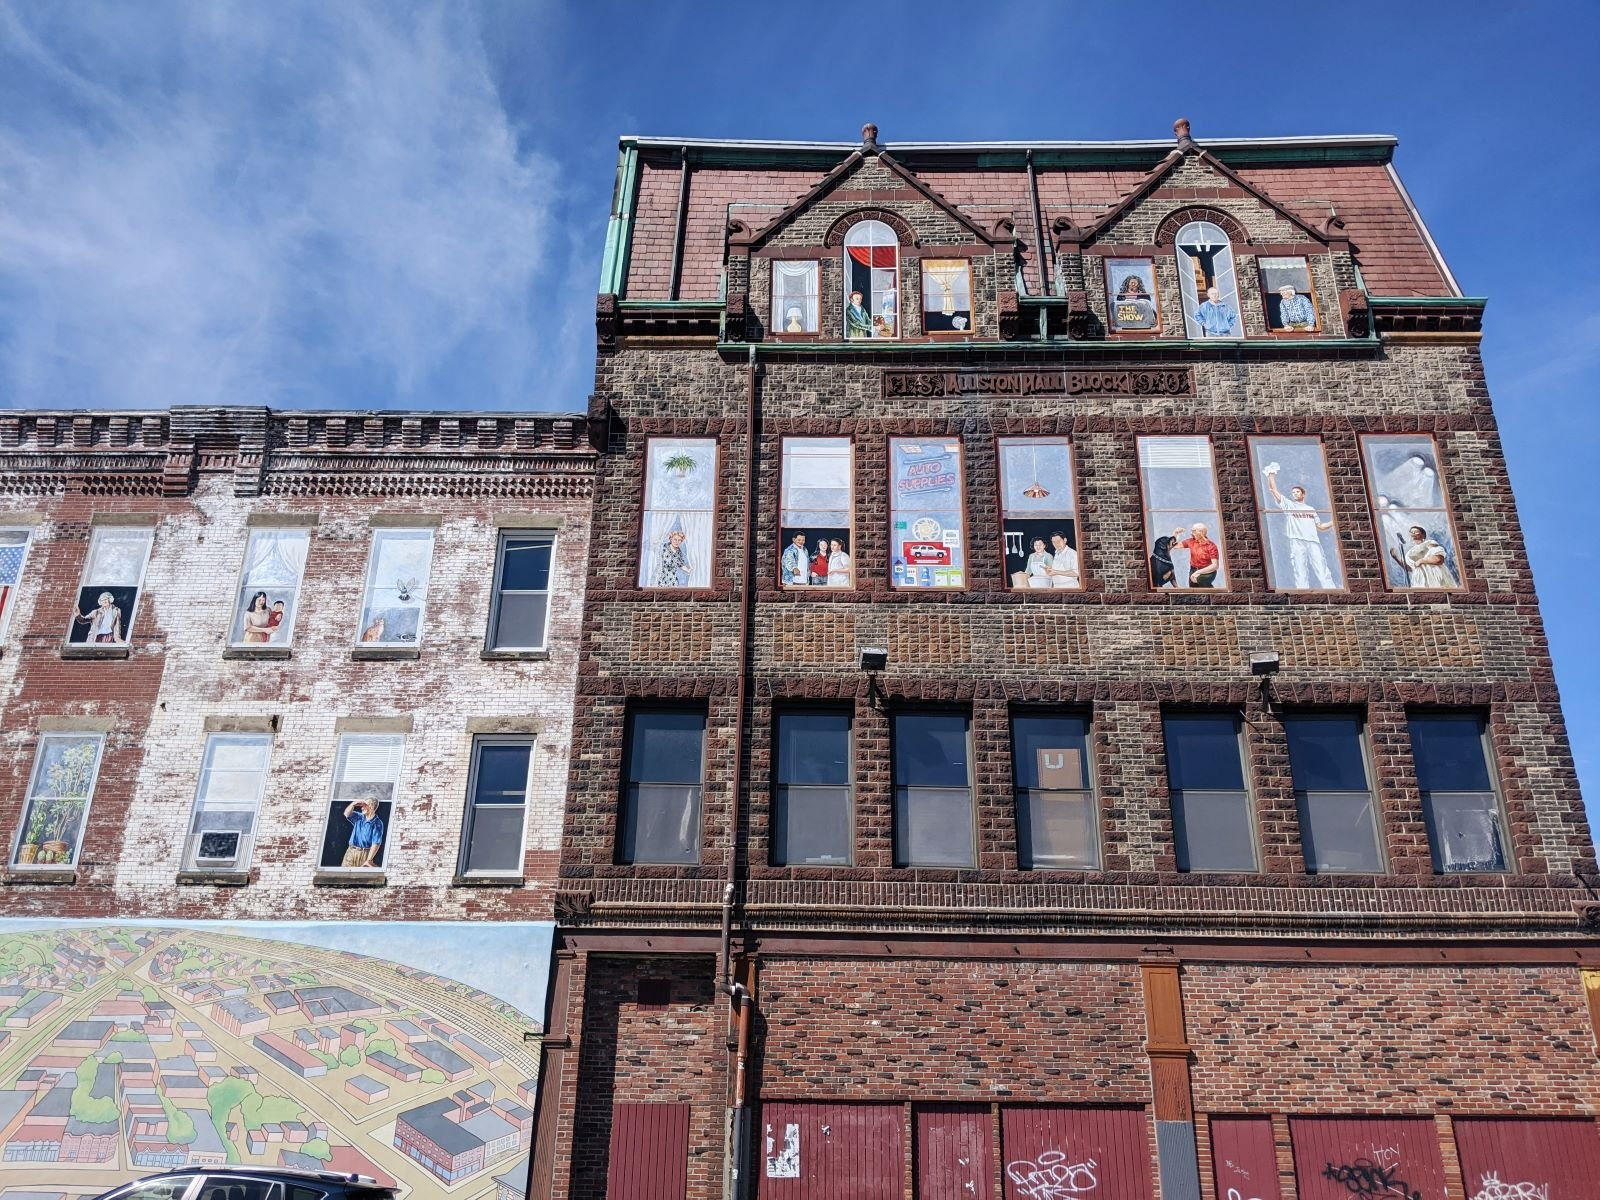 murals painted into the windows of a brick building in Allston